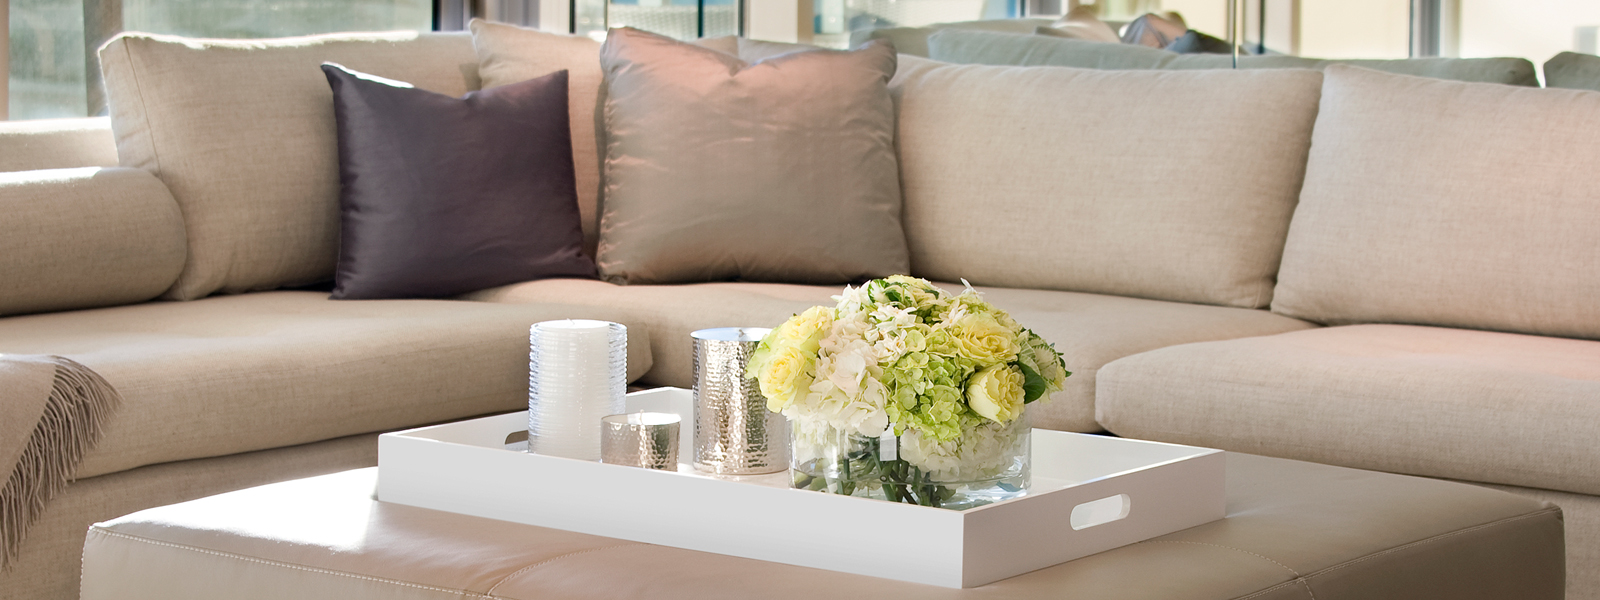 banner-decoraccents-candles.jpg